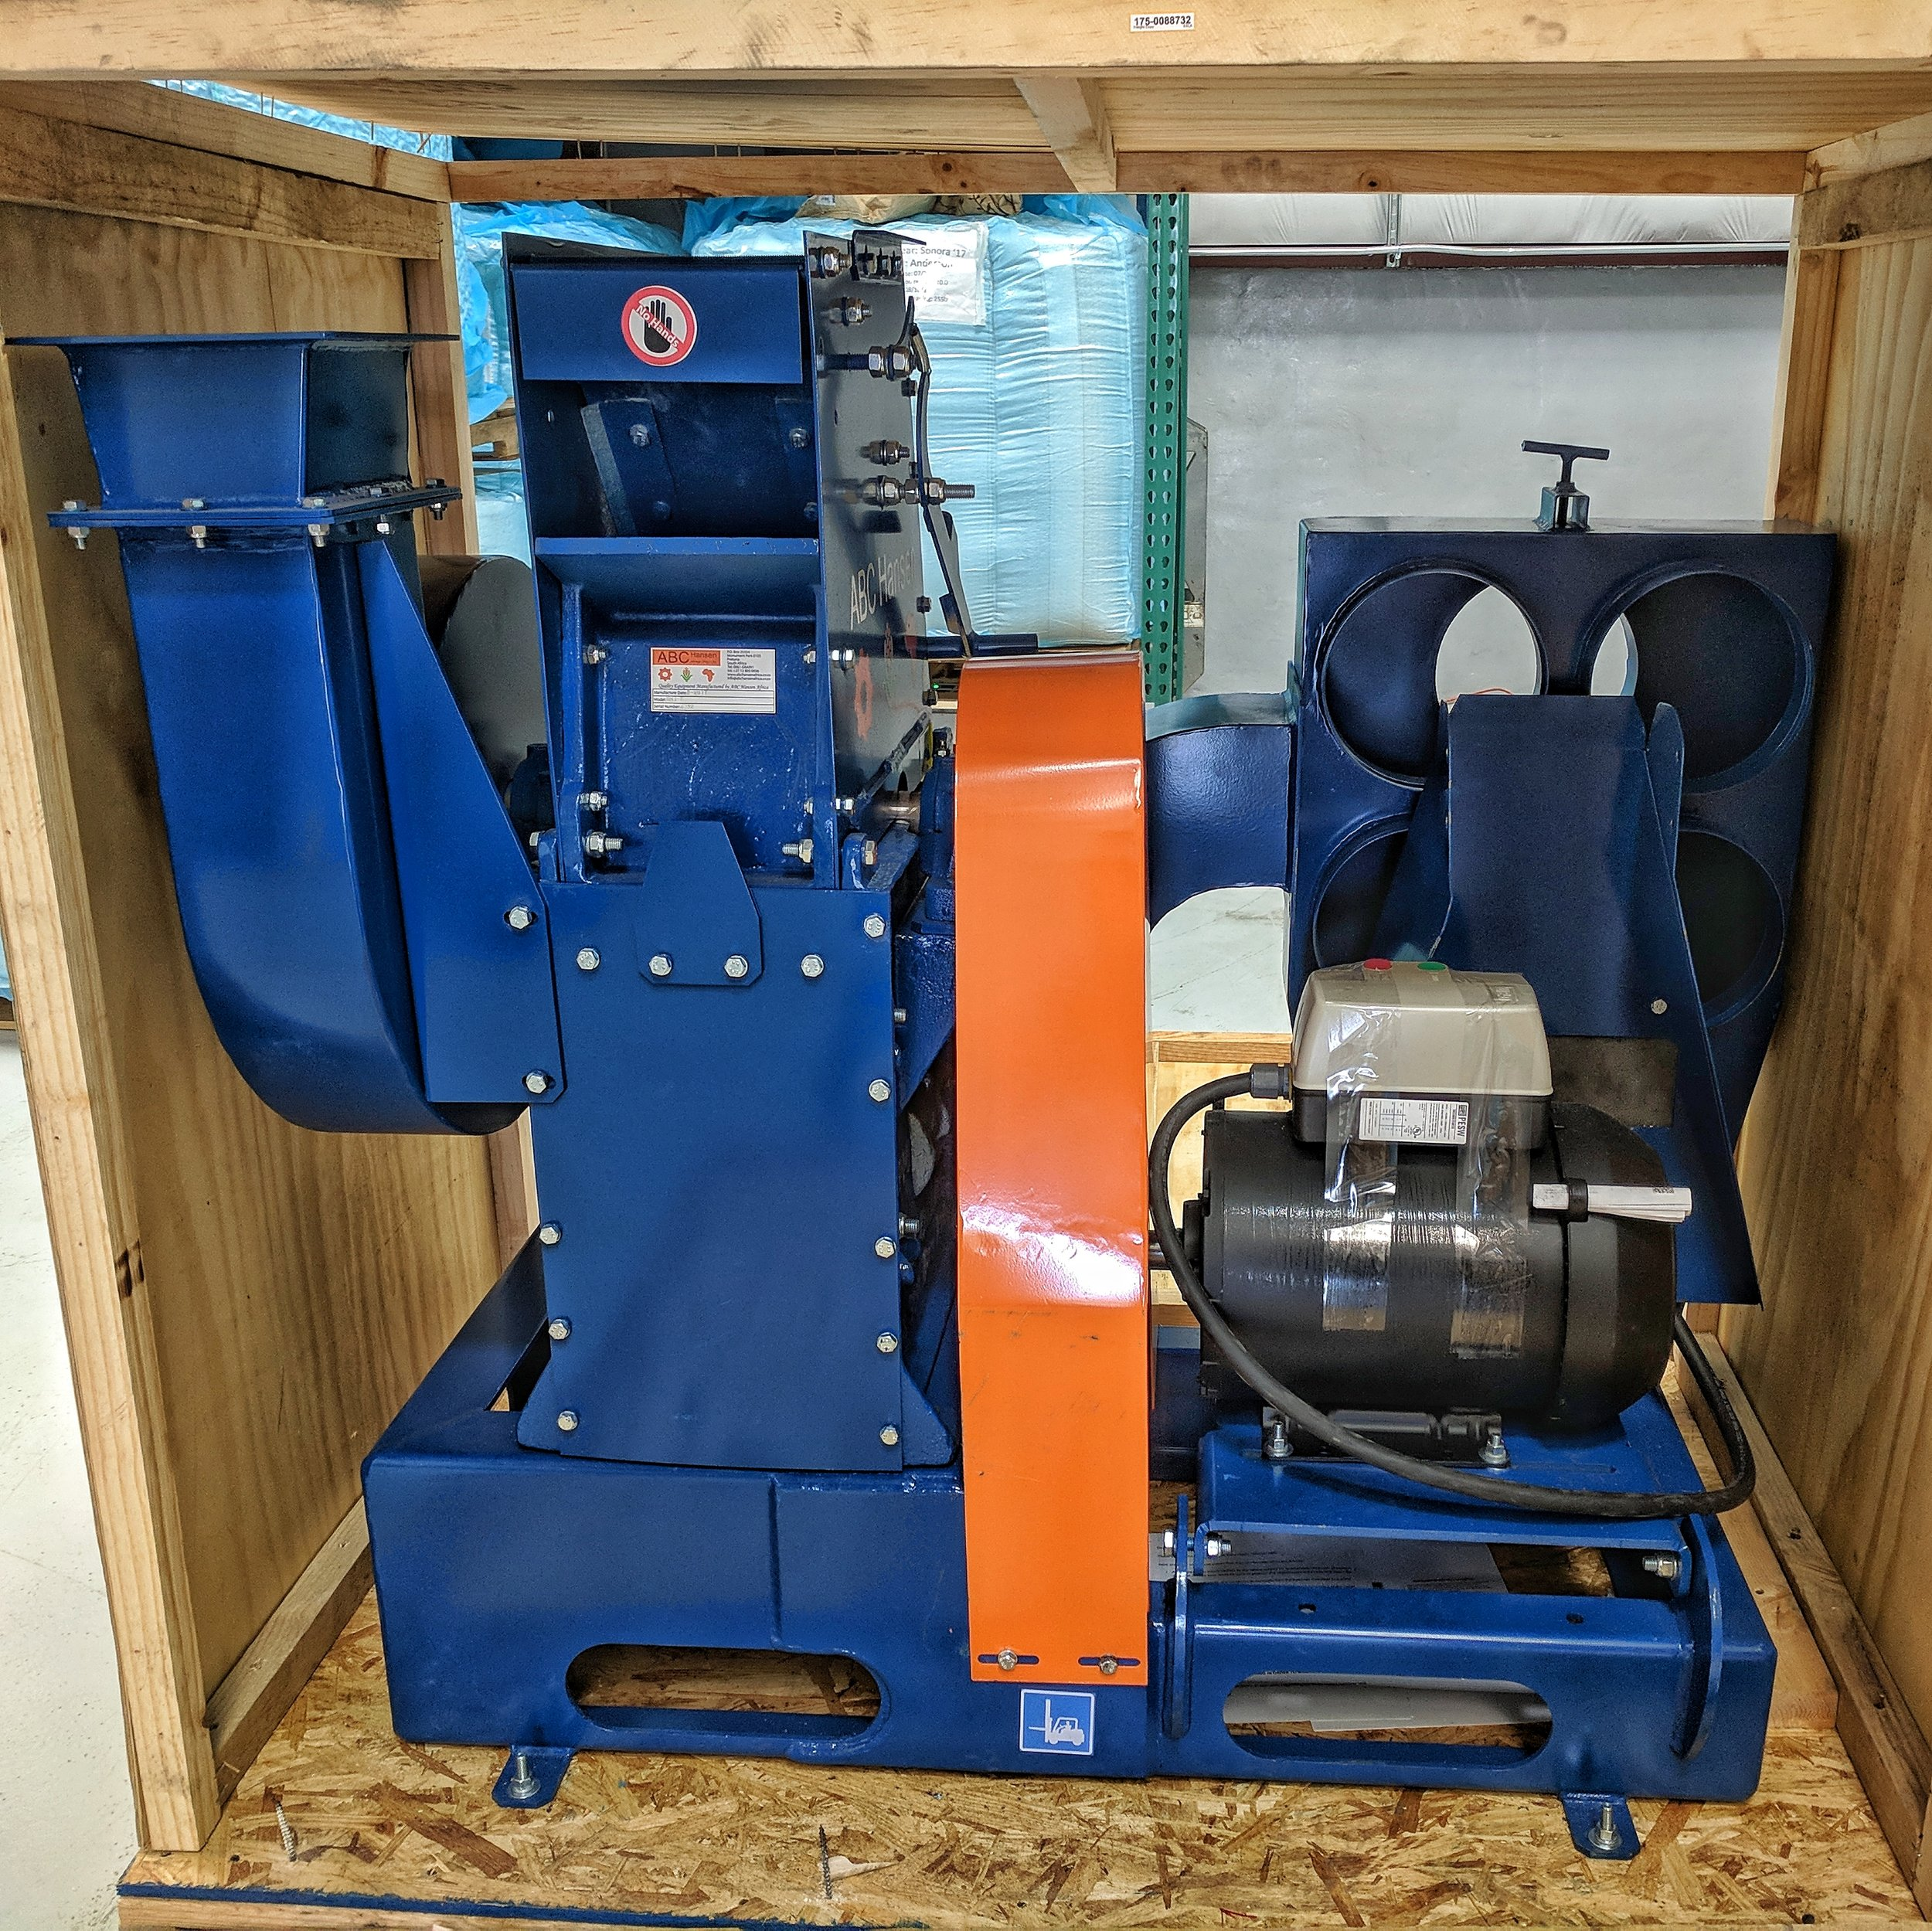 Hippo hammermill for pulverizing mesquite beans